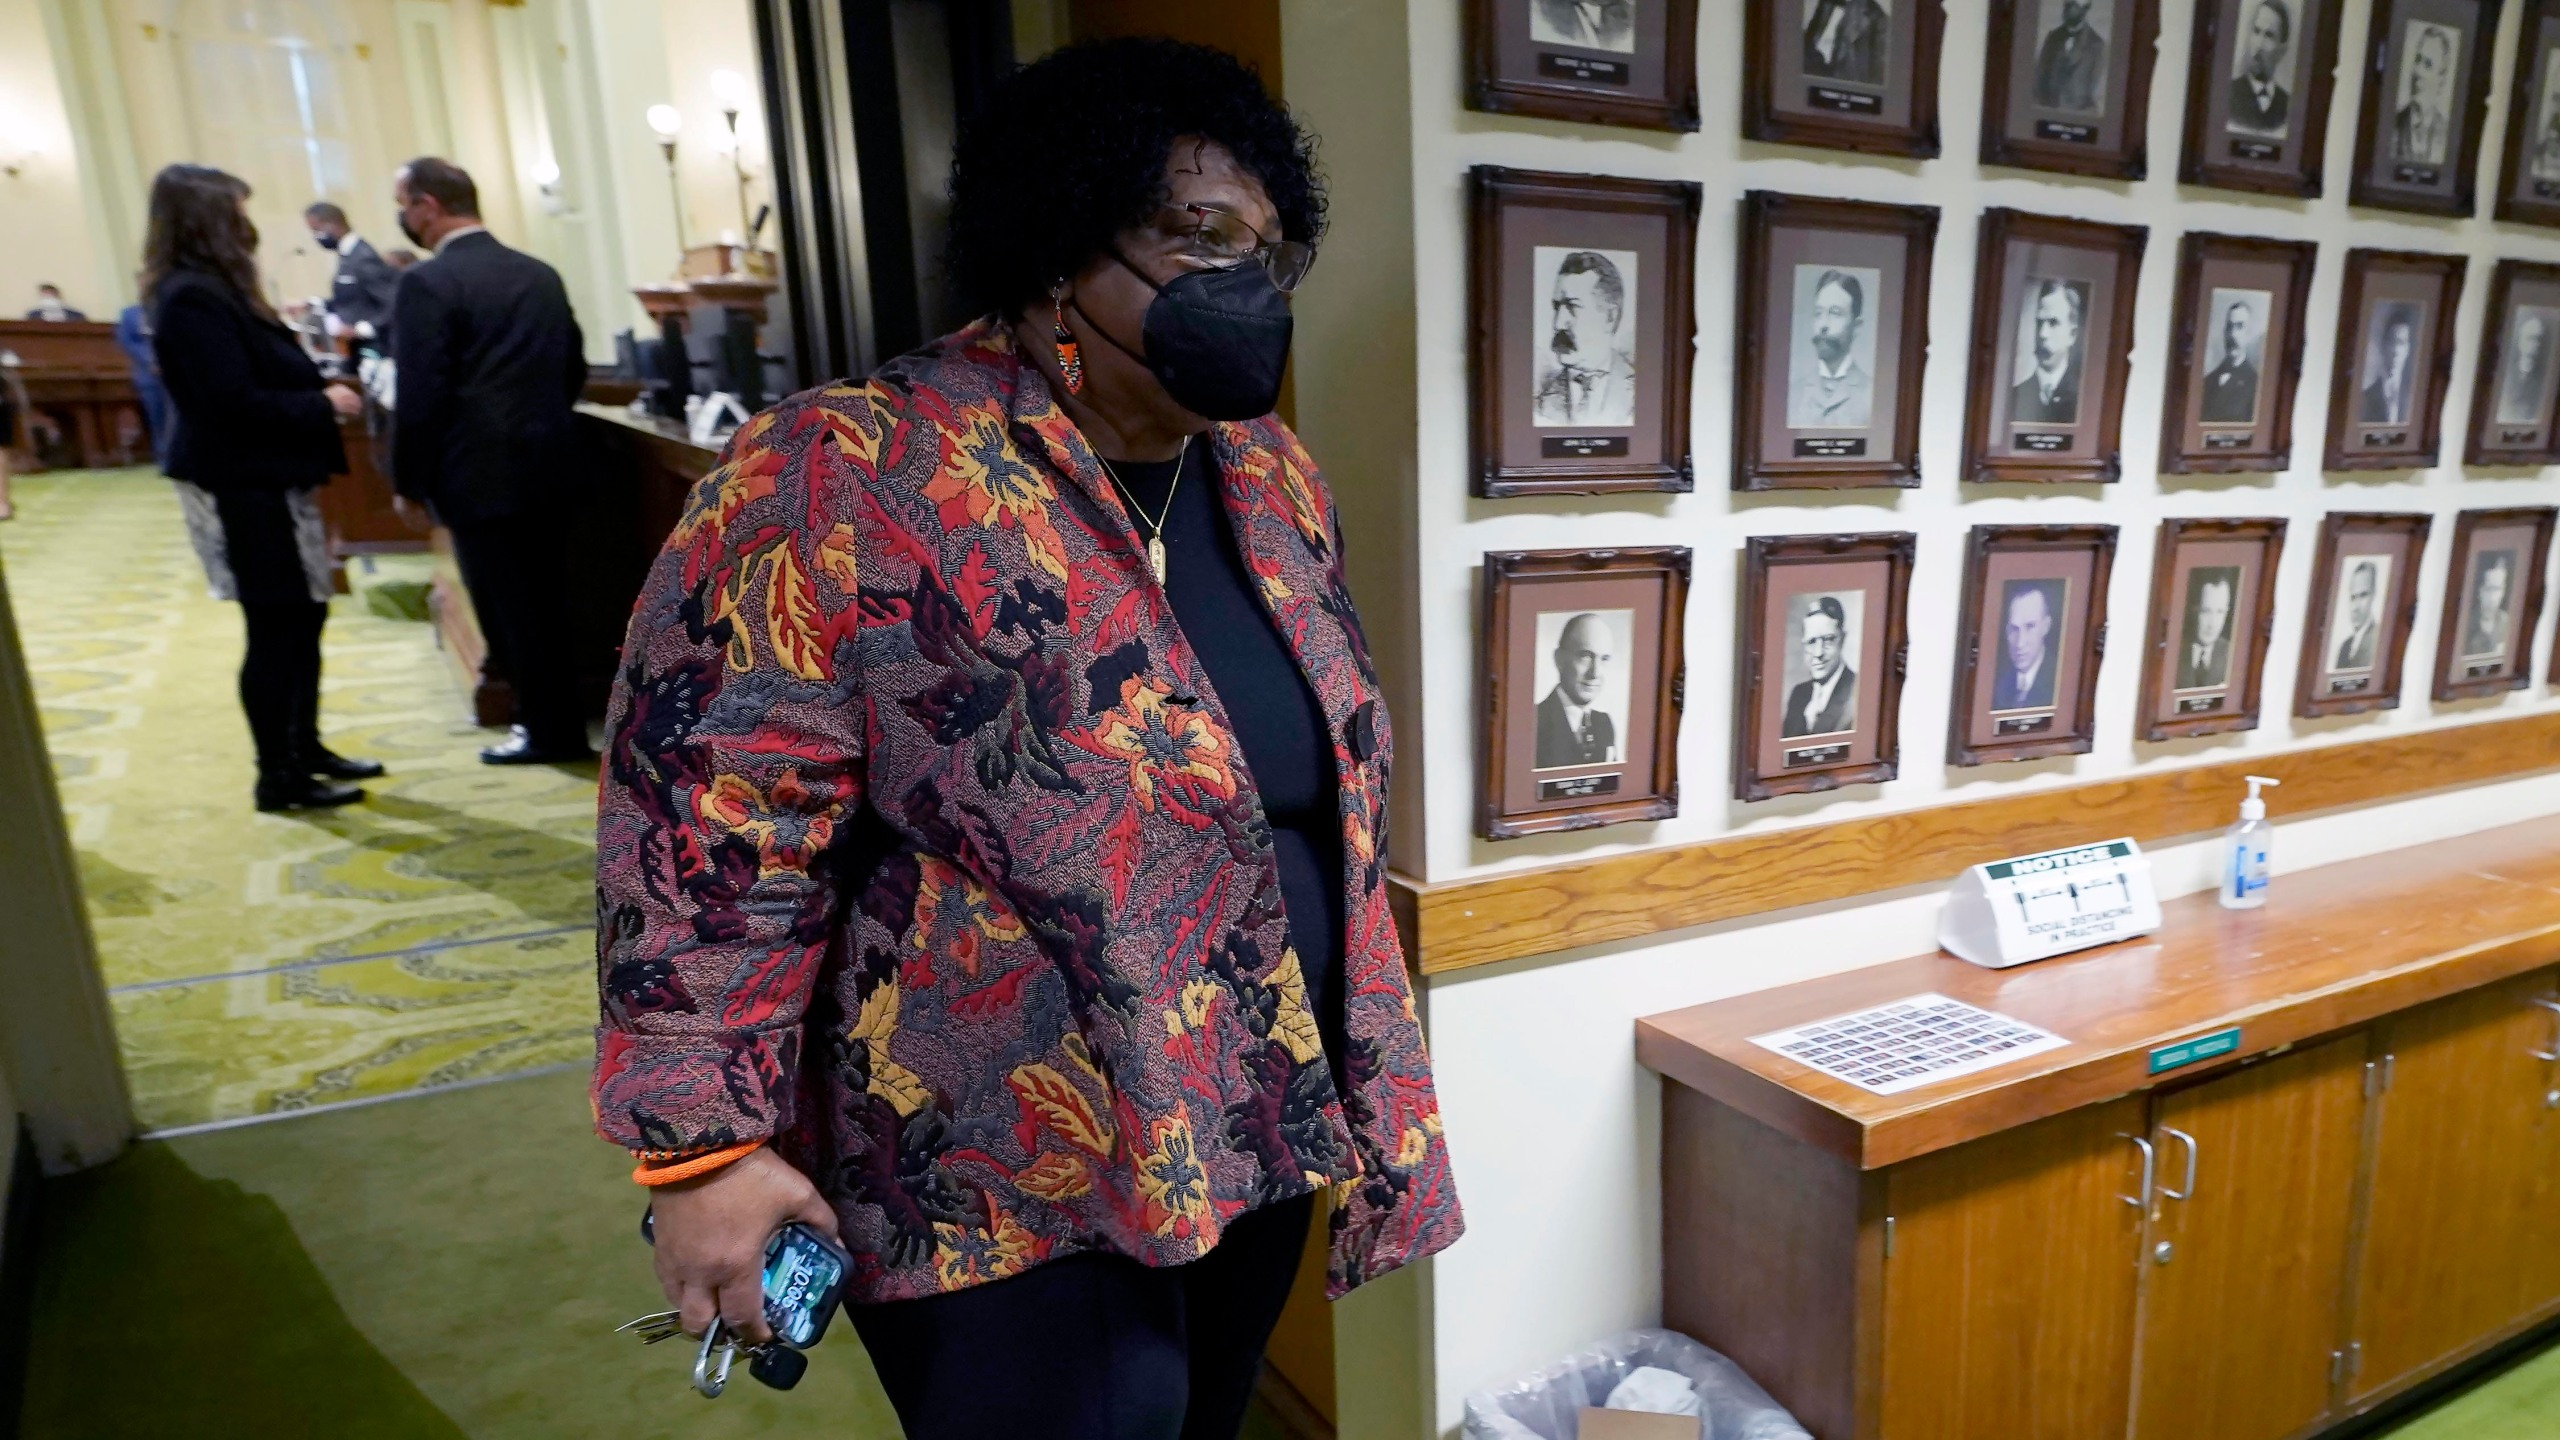 Democratic Assemblywoman Shirley Weber leaves the Assembly Chambers at the Capitol in Sacramento on Jan. 28, 2021. (Rich Pedroncelli / Associated Press)